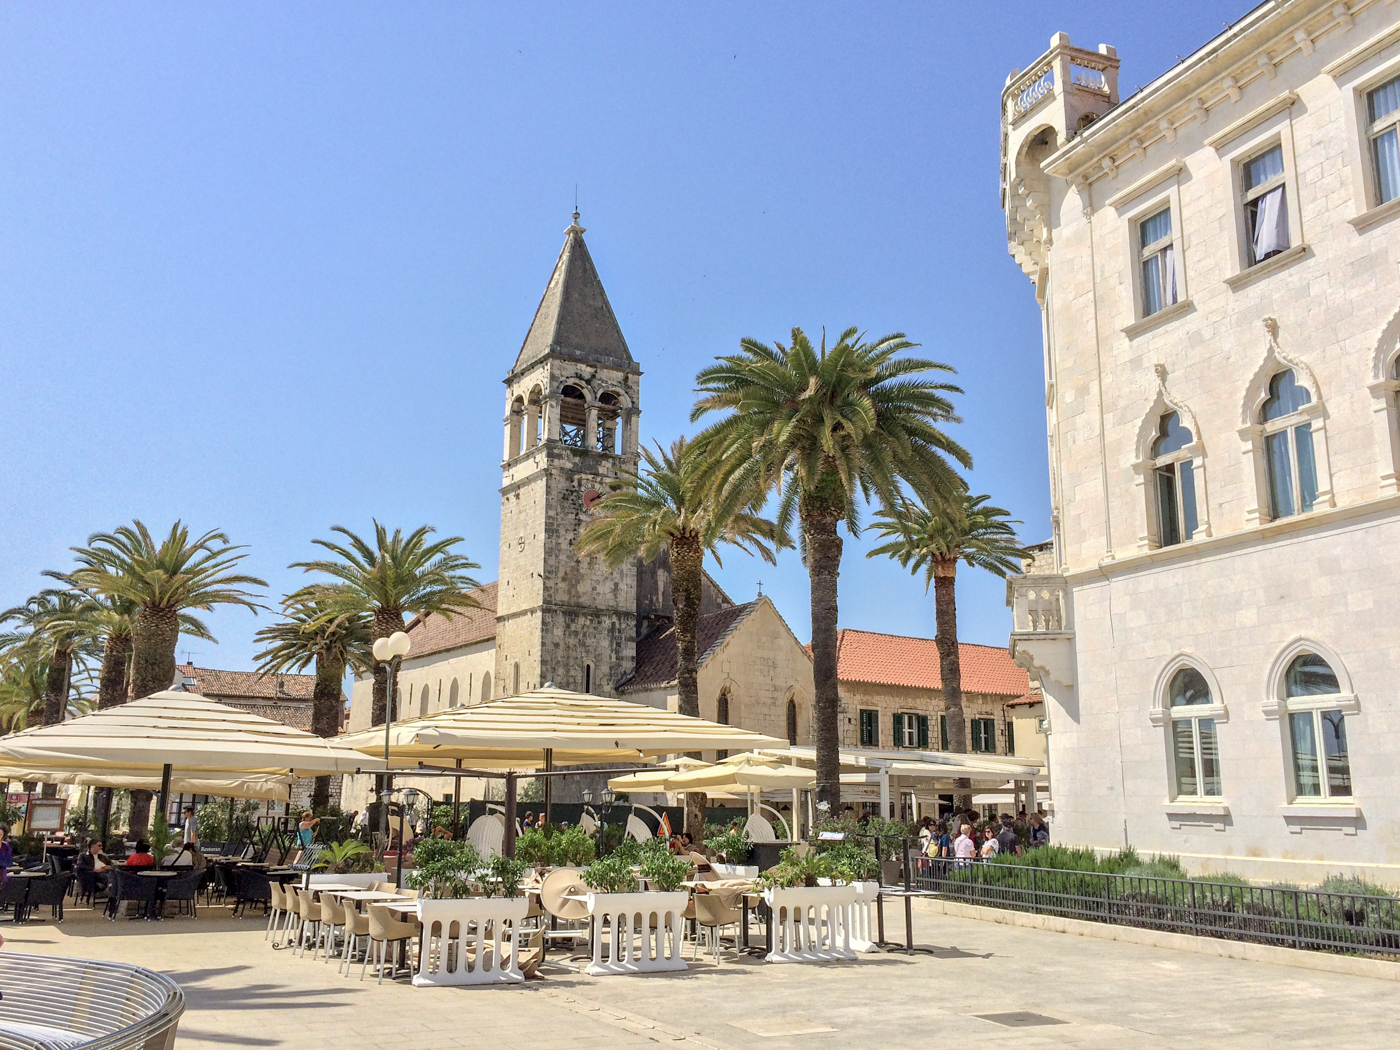 Trogir, Croatia is a UNESCO World Heritage Site in Europe that you should include on your European travel itinerary. Read the article to discover more UNESCO monuments in Europe and UNESCO sites in Europe. #UNESCO #unescosites #unescositeseurope #europeunesco #croatiaunesco #croatia